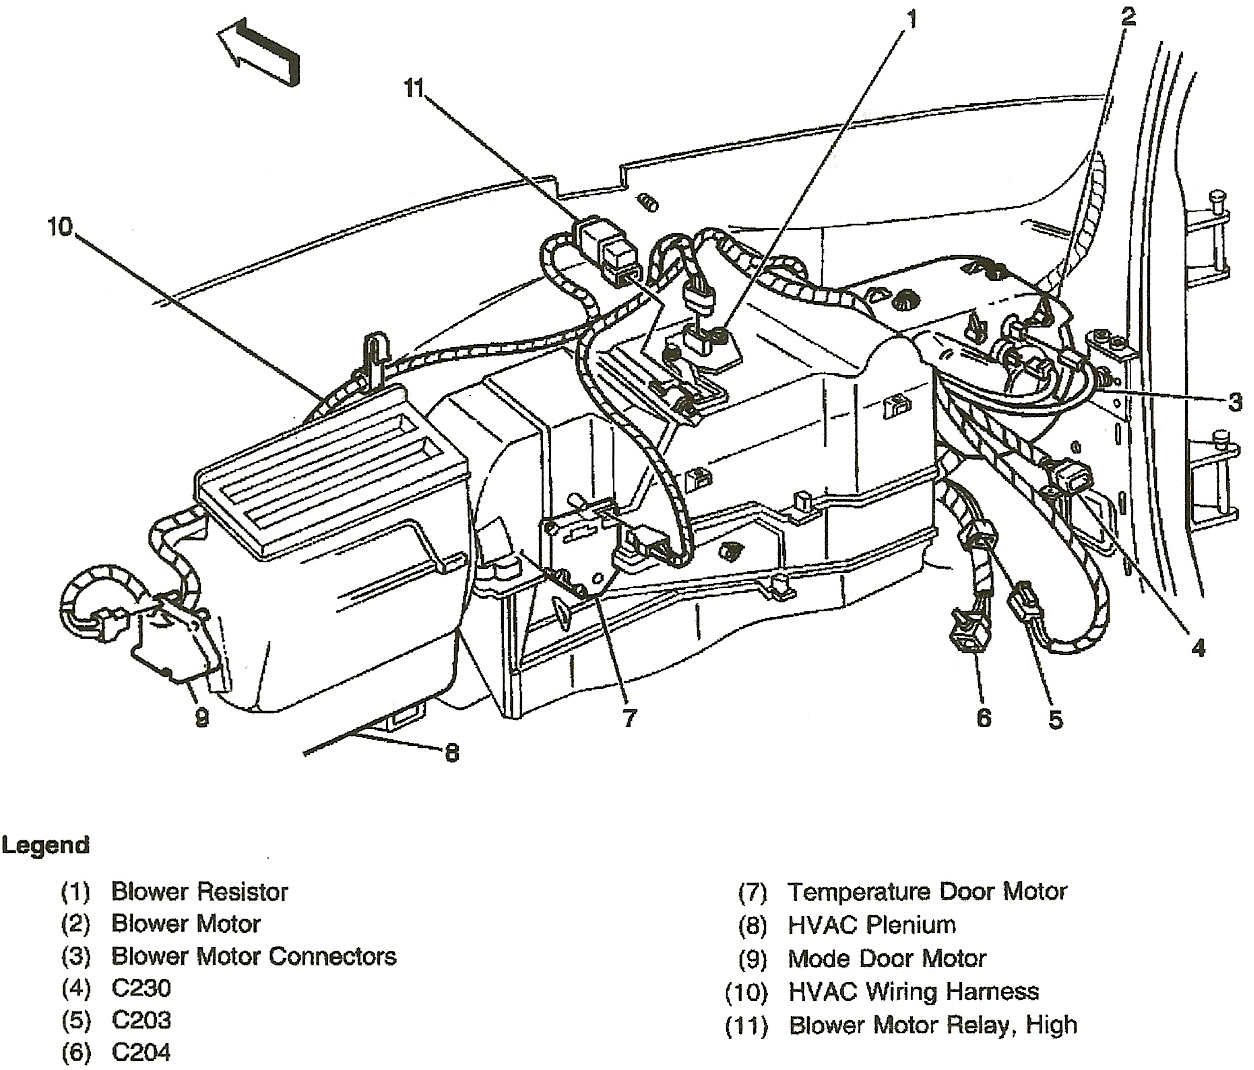 hight resolution of 1999 yukon engine diagram wiring diagram data 1999 yukon engine diagram